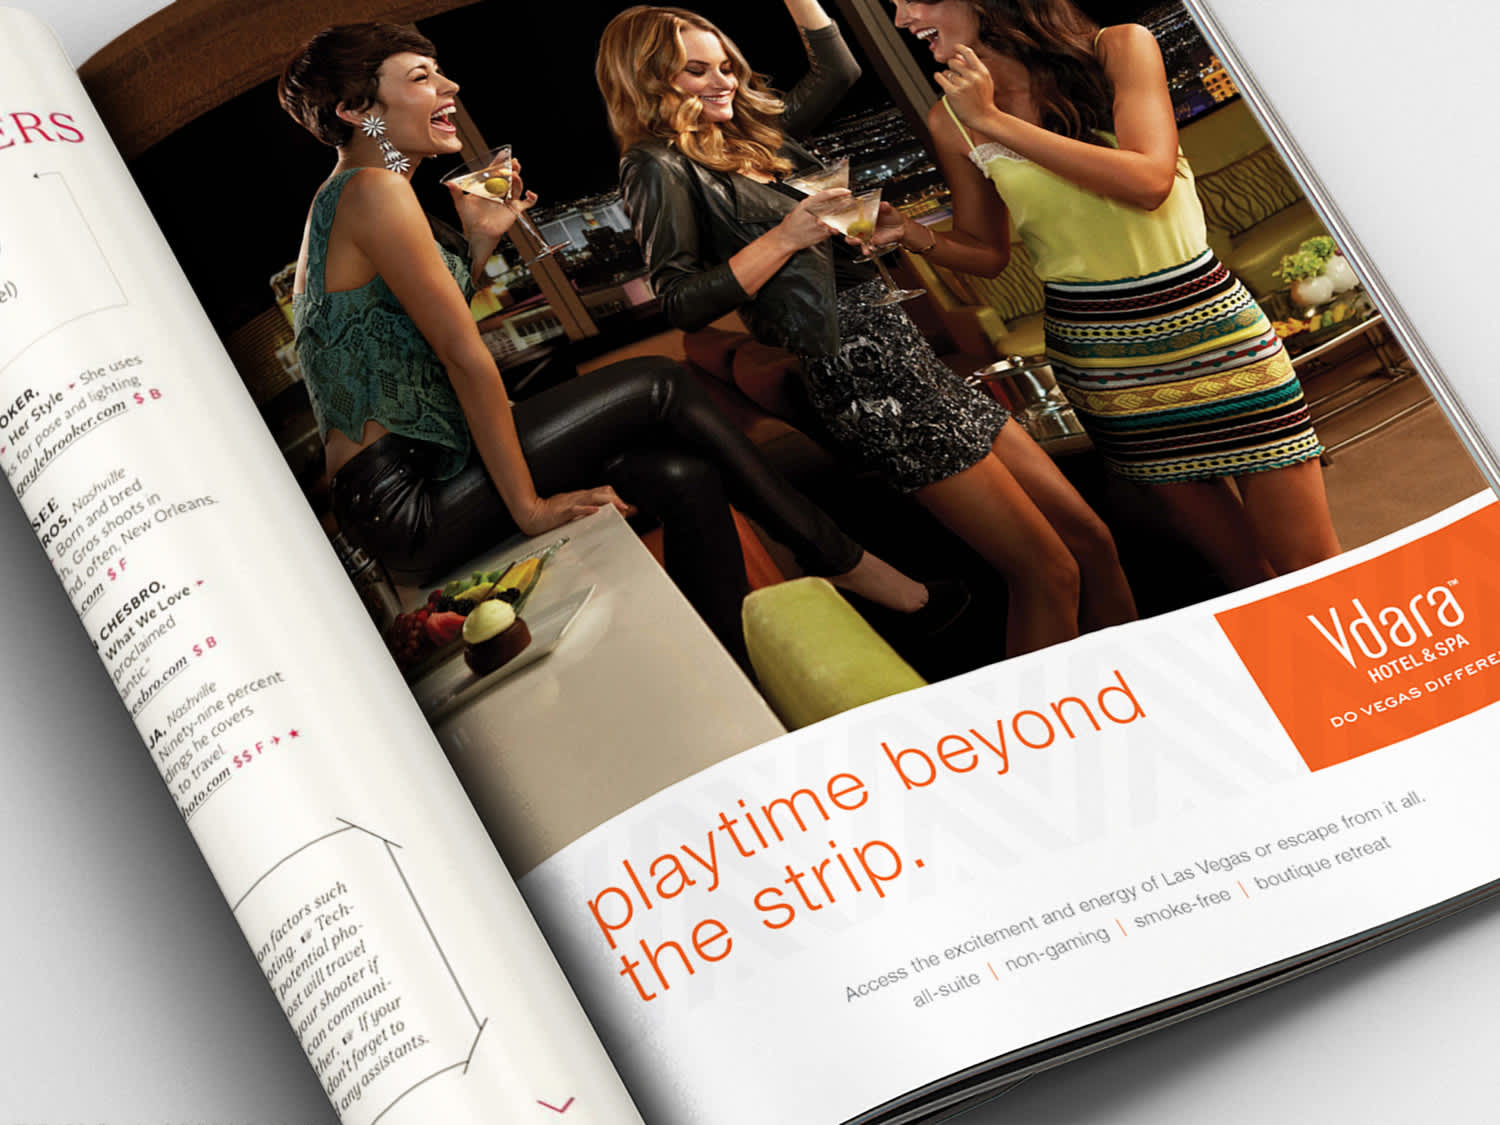 Vdara Hotel & Spa Advertising Campaign